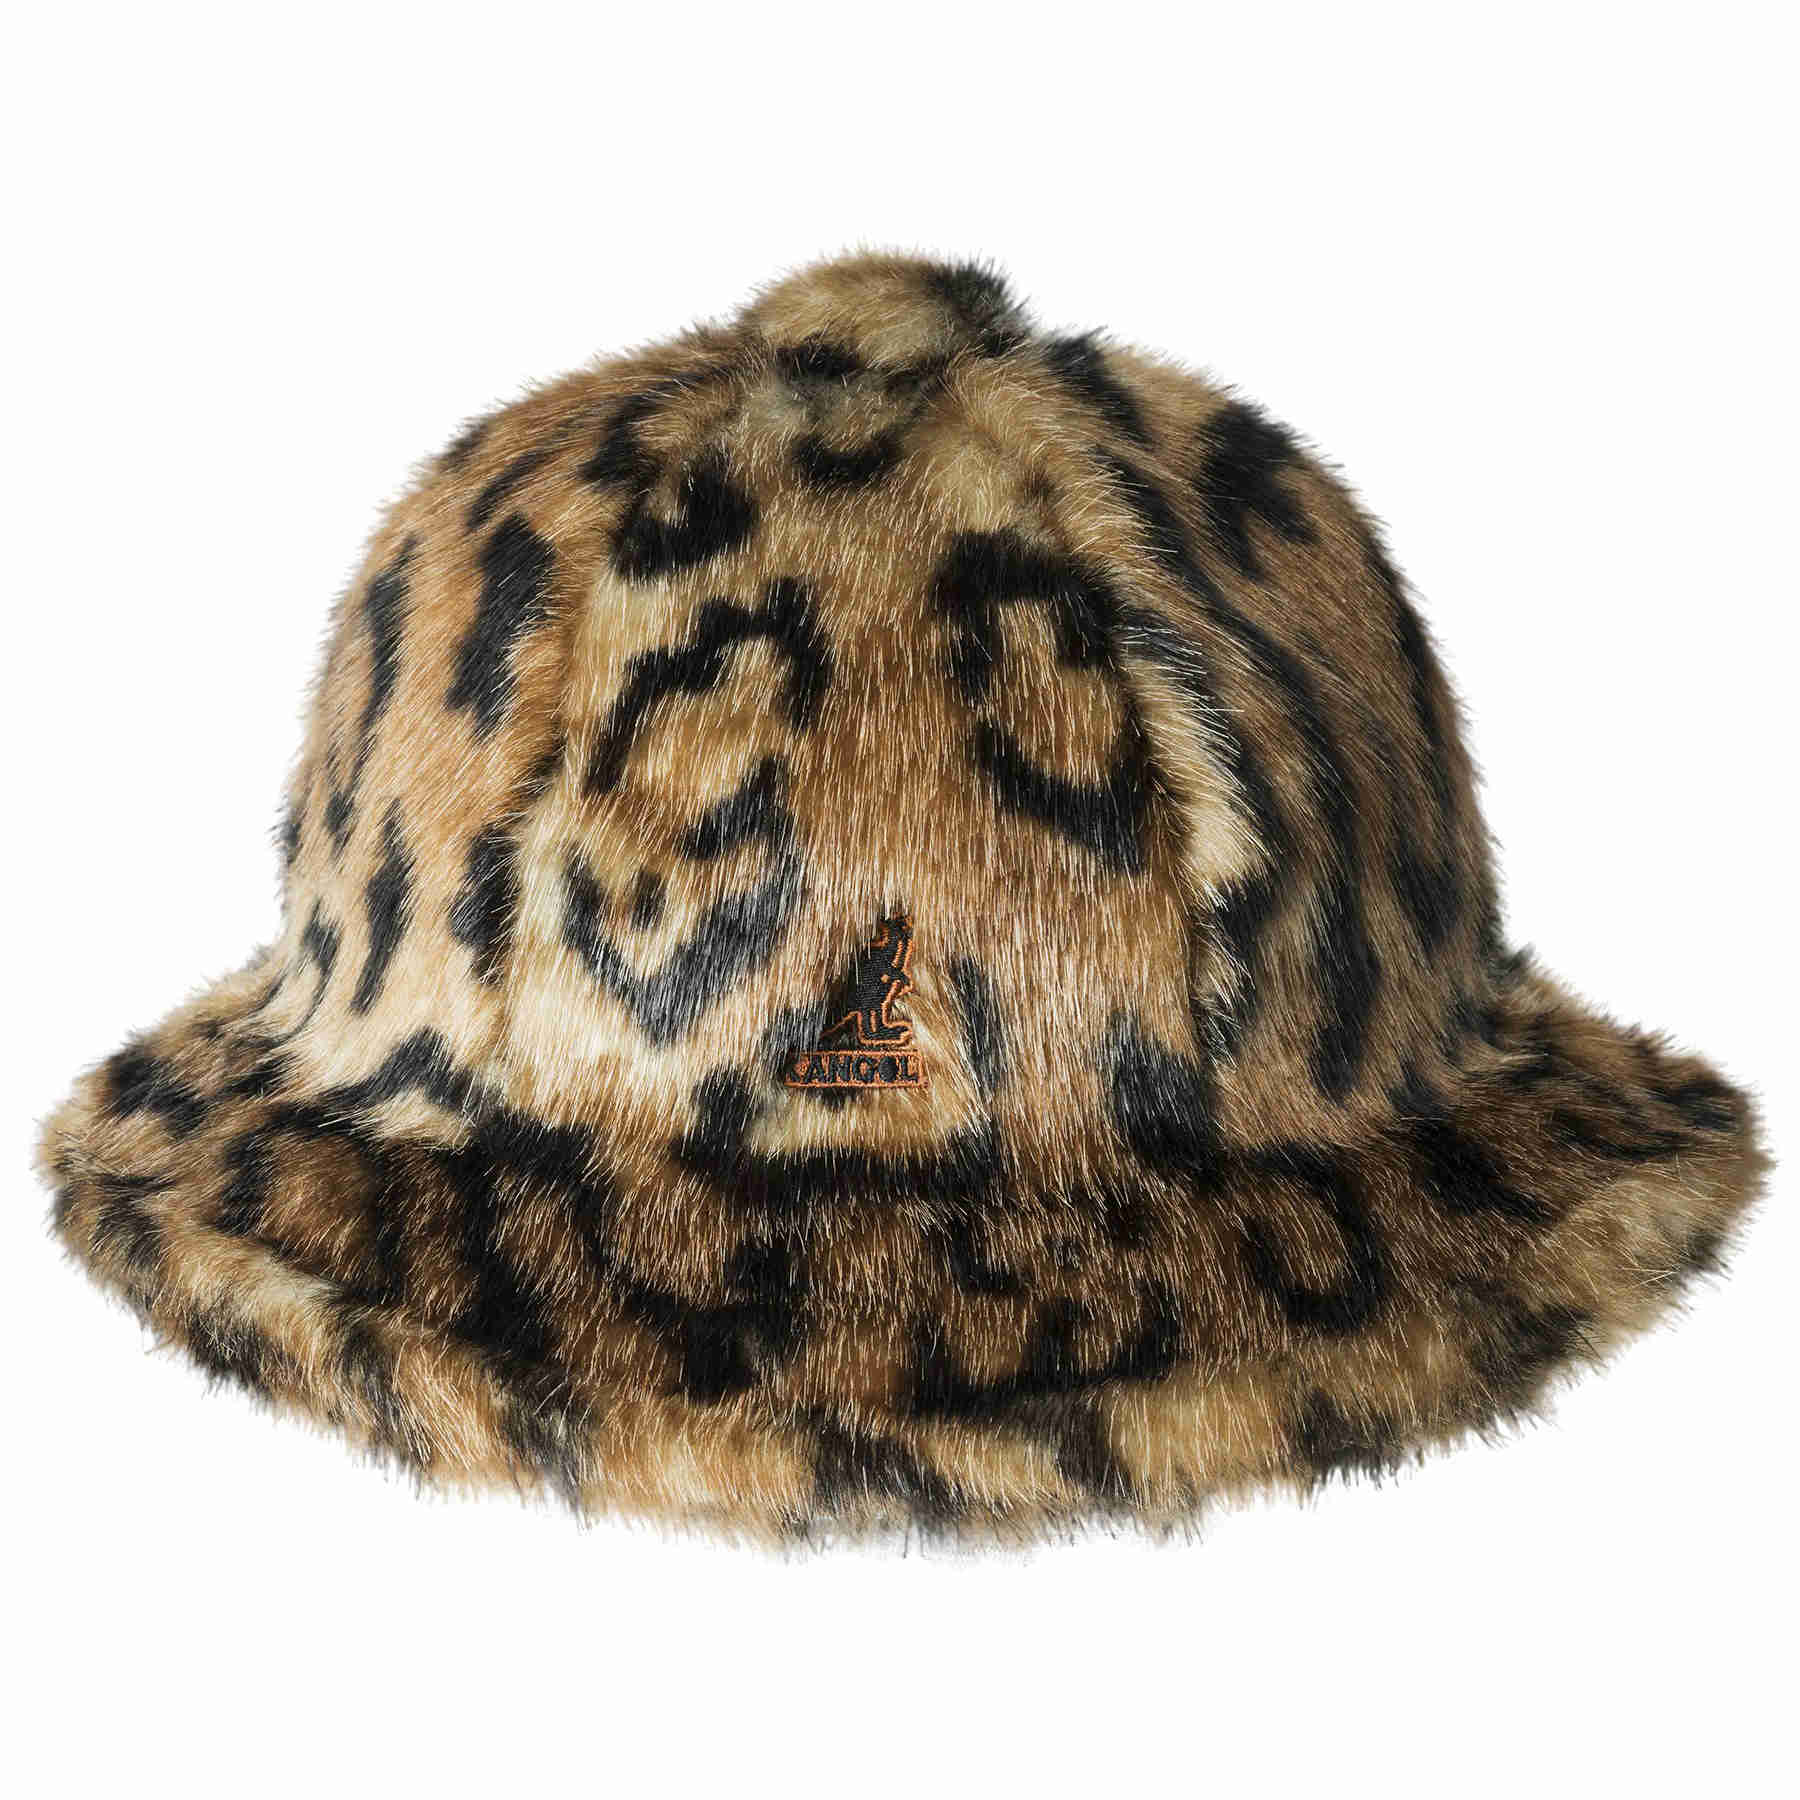 Kangol Faux Fur Casual Bucket Hat - Dapperfam.com